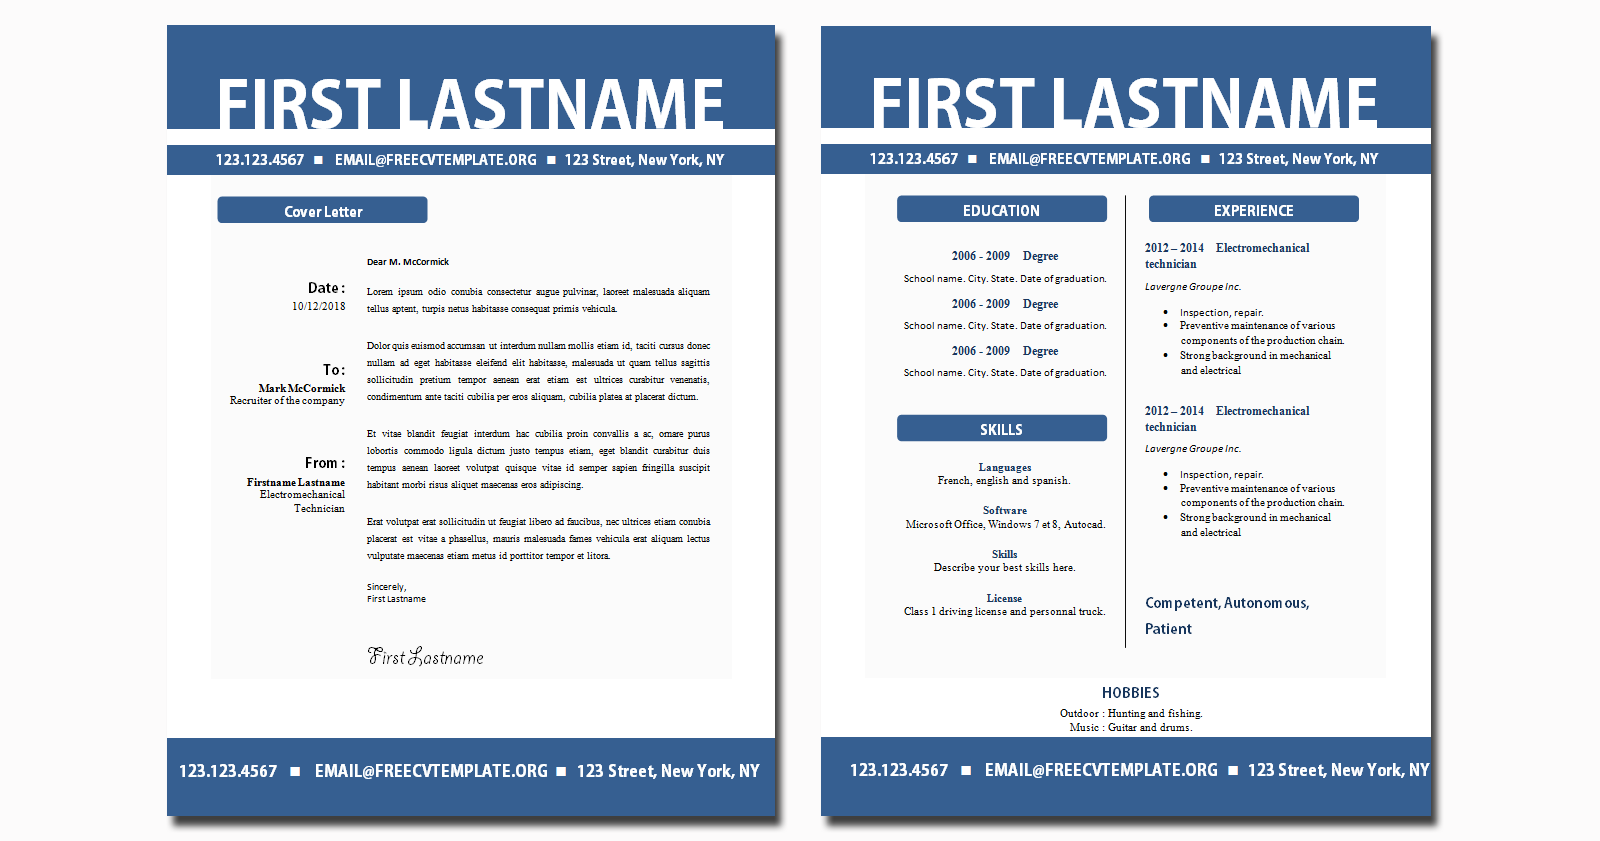 Blank CV and Cover Letter Templates Ocean Blue